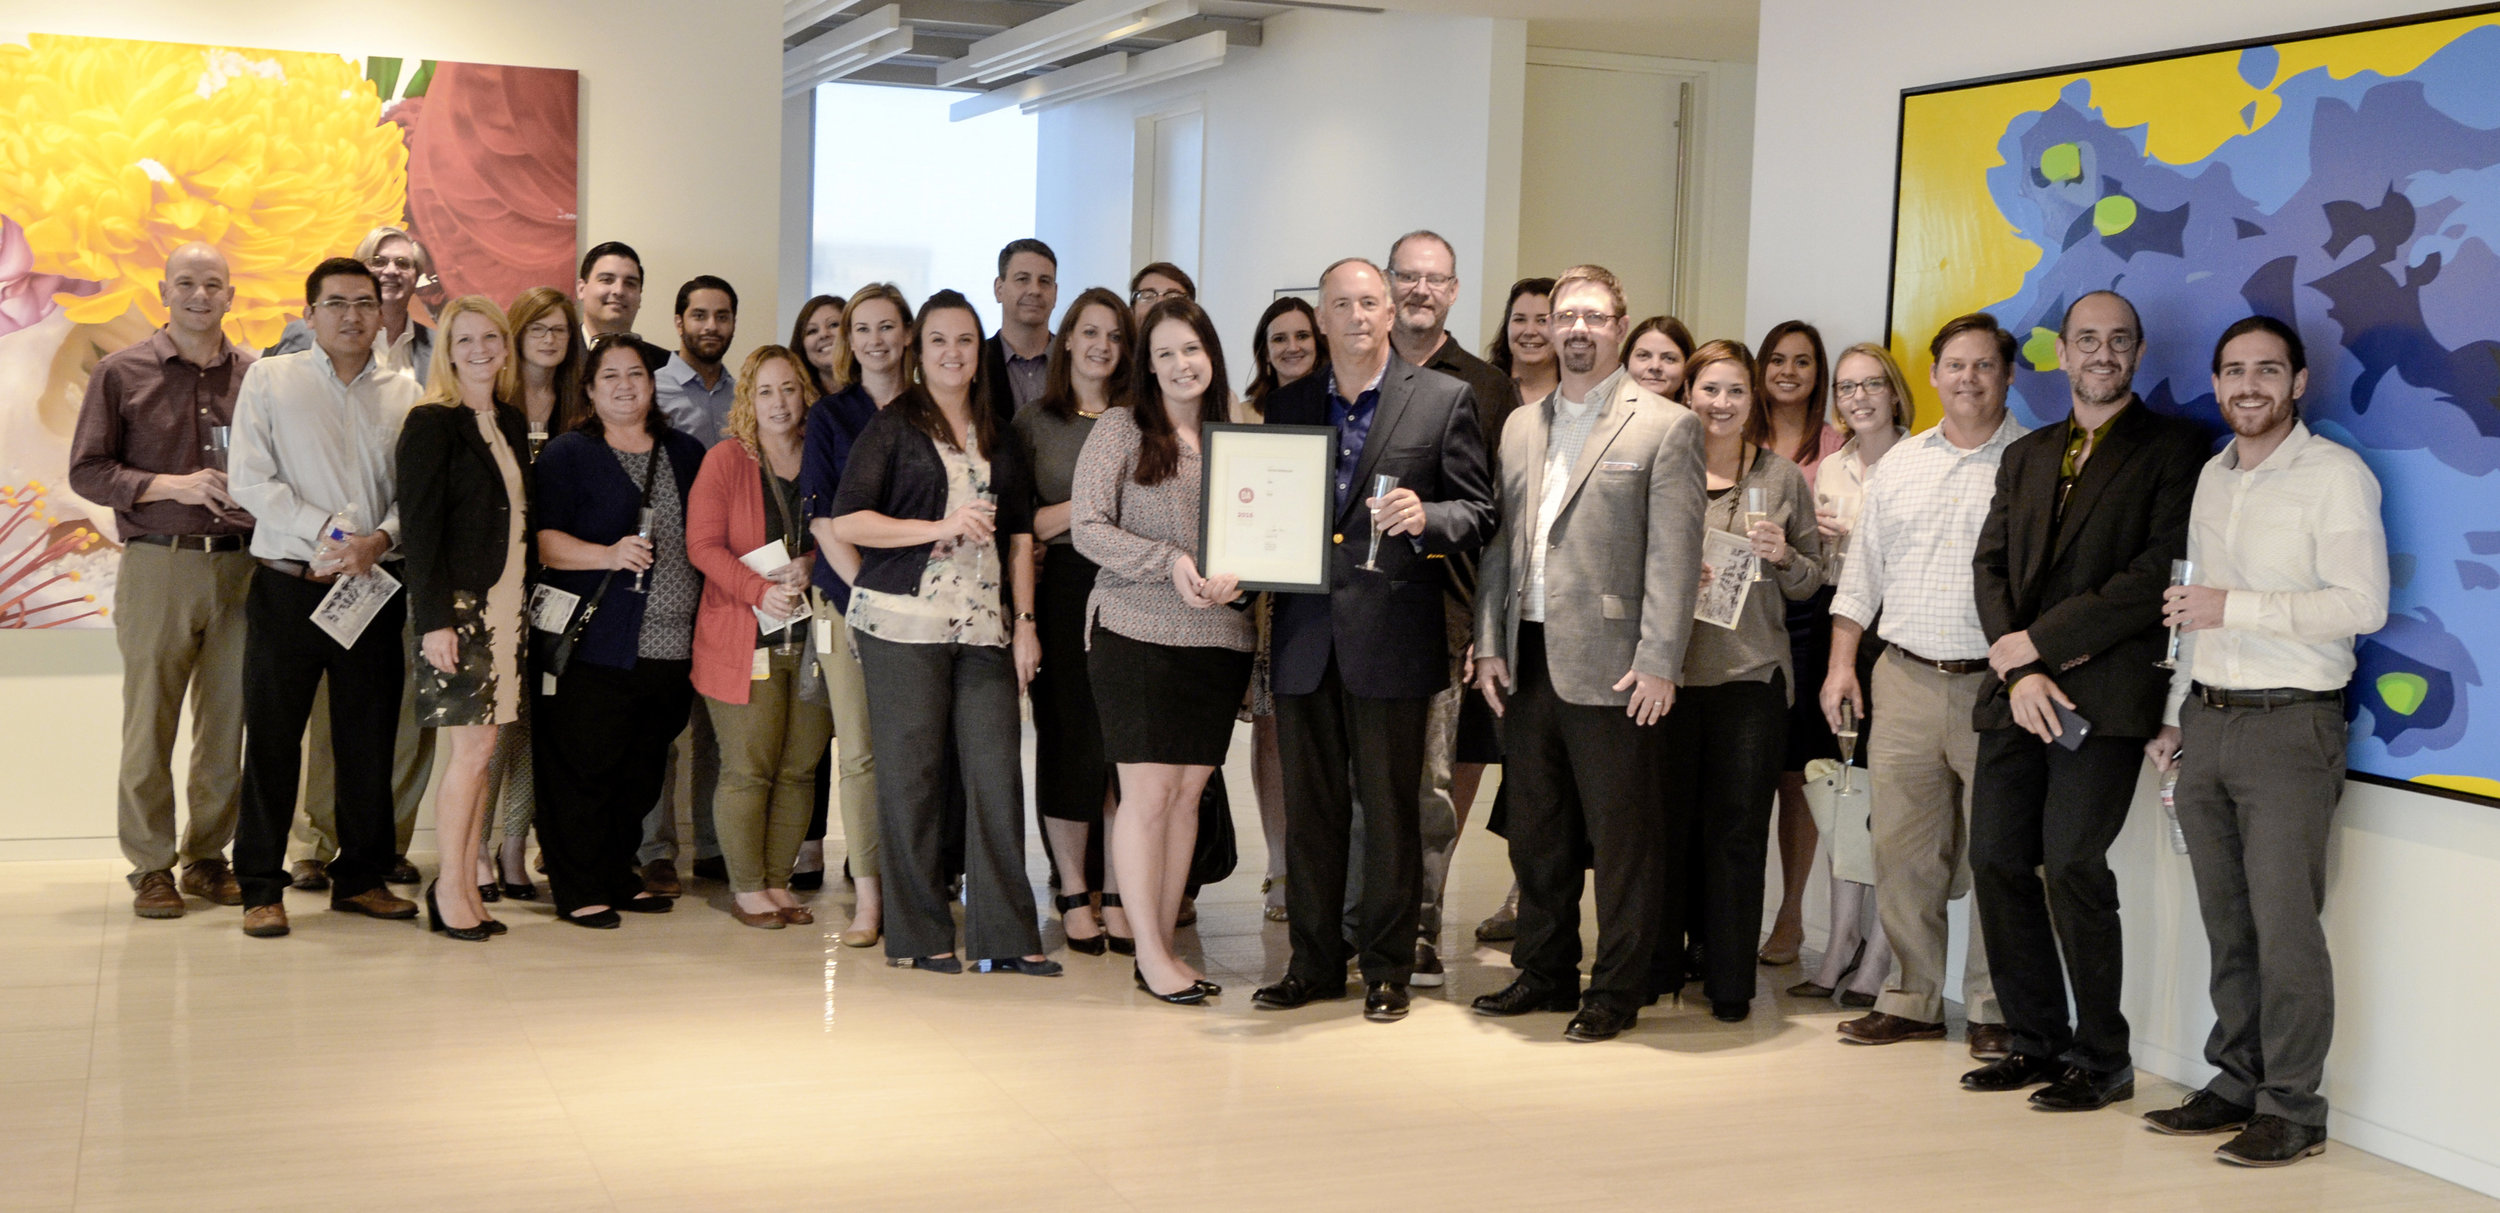 PDR celebrates AIA Houston Design Excellence Award and the Architectural Record, Records Interior Award and issue together with Vitol.